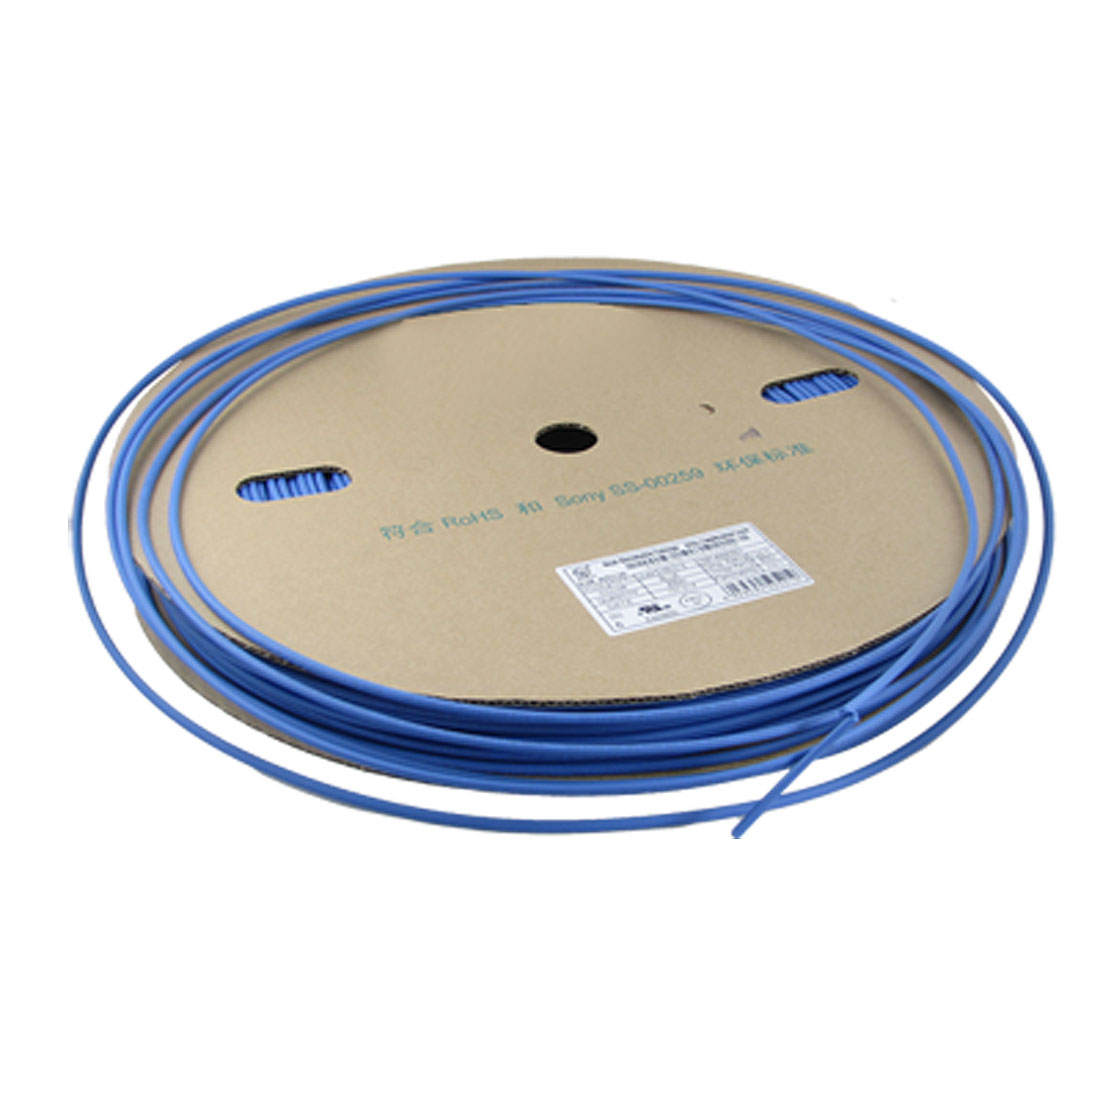 Ratio 2:1 Blue 3.5mm Dia. Sleeving Heat Shrink Tube 200M